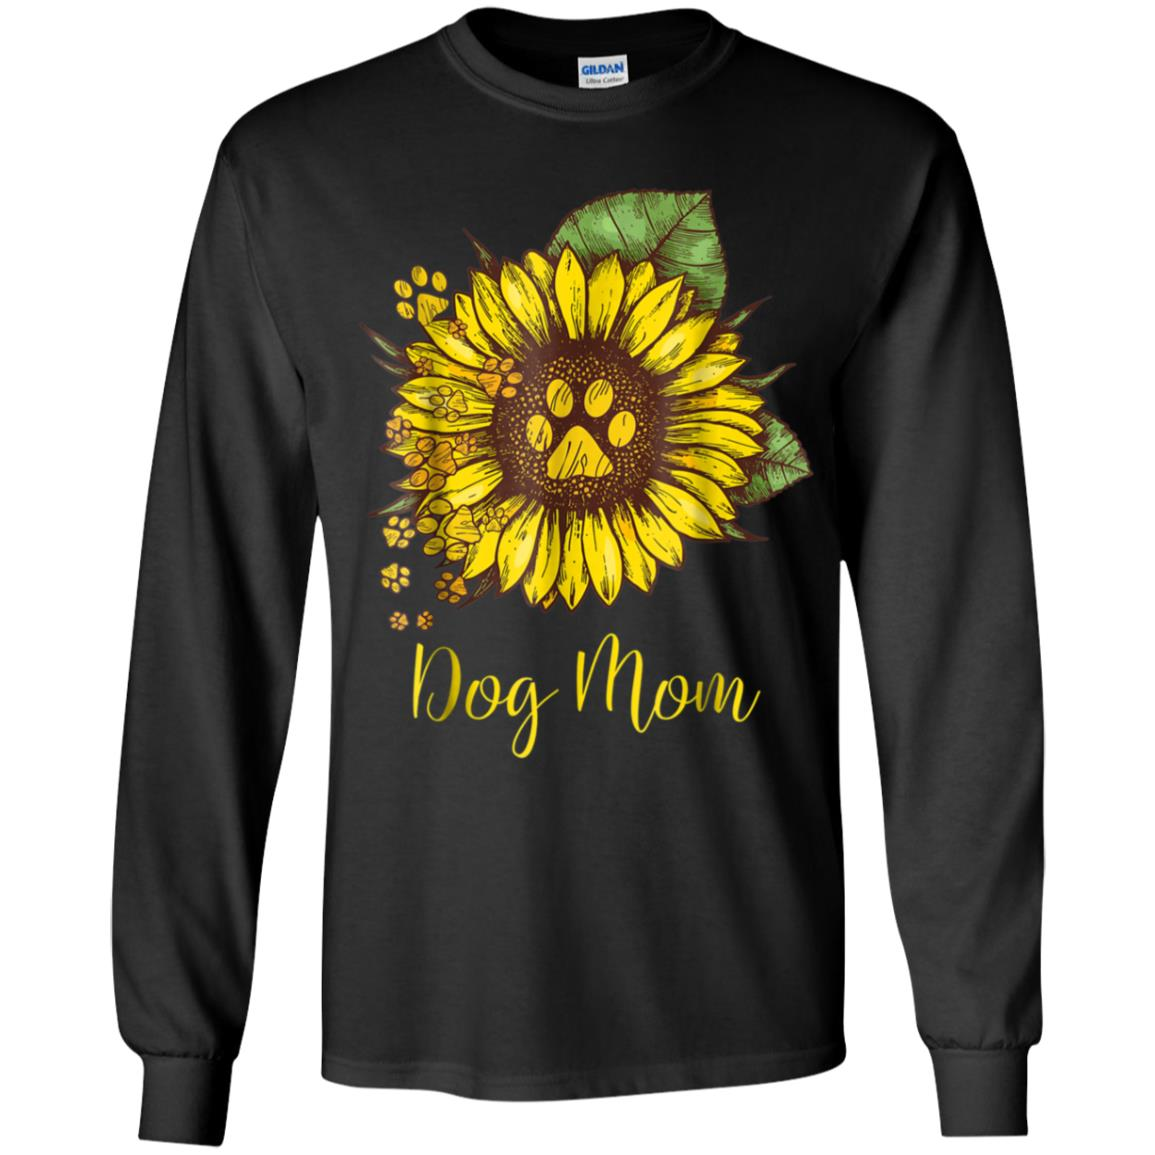 0efc8e4fbaed Awesome sunflower dog mom paw t shirt funny gift for men women ...